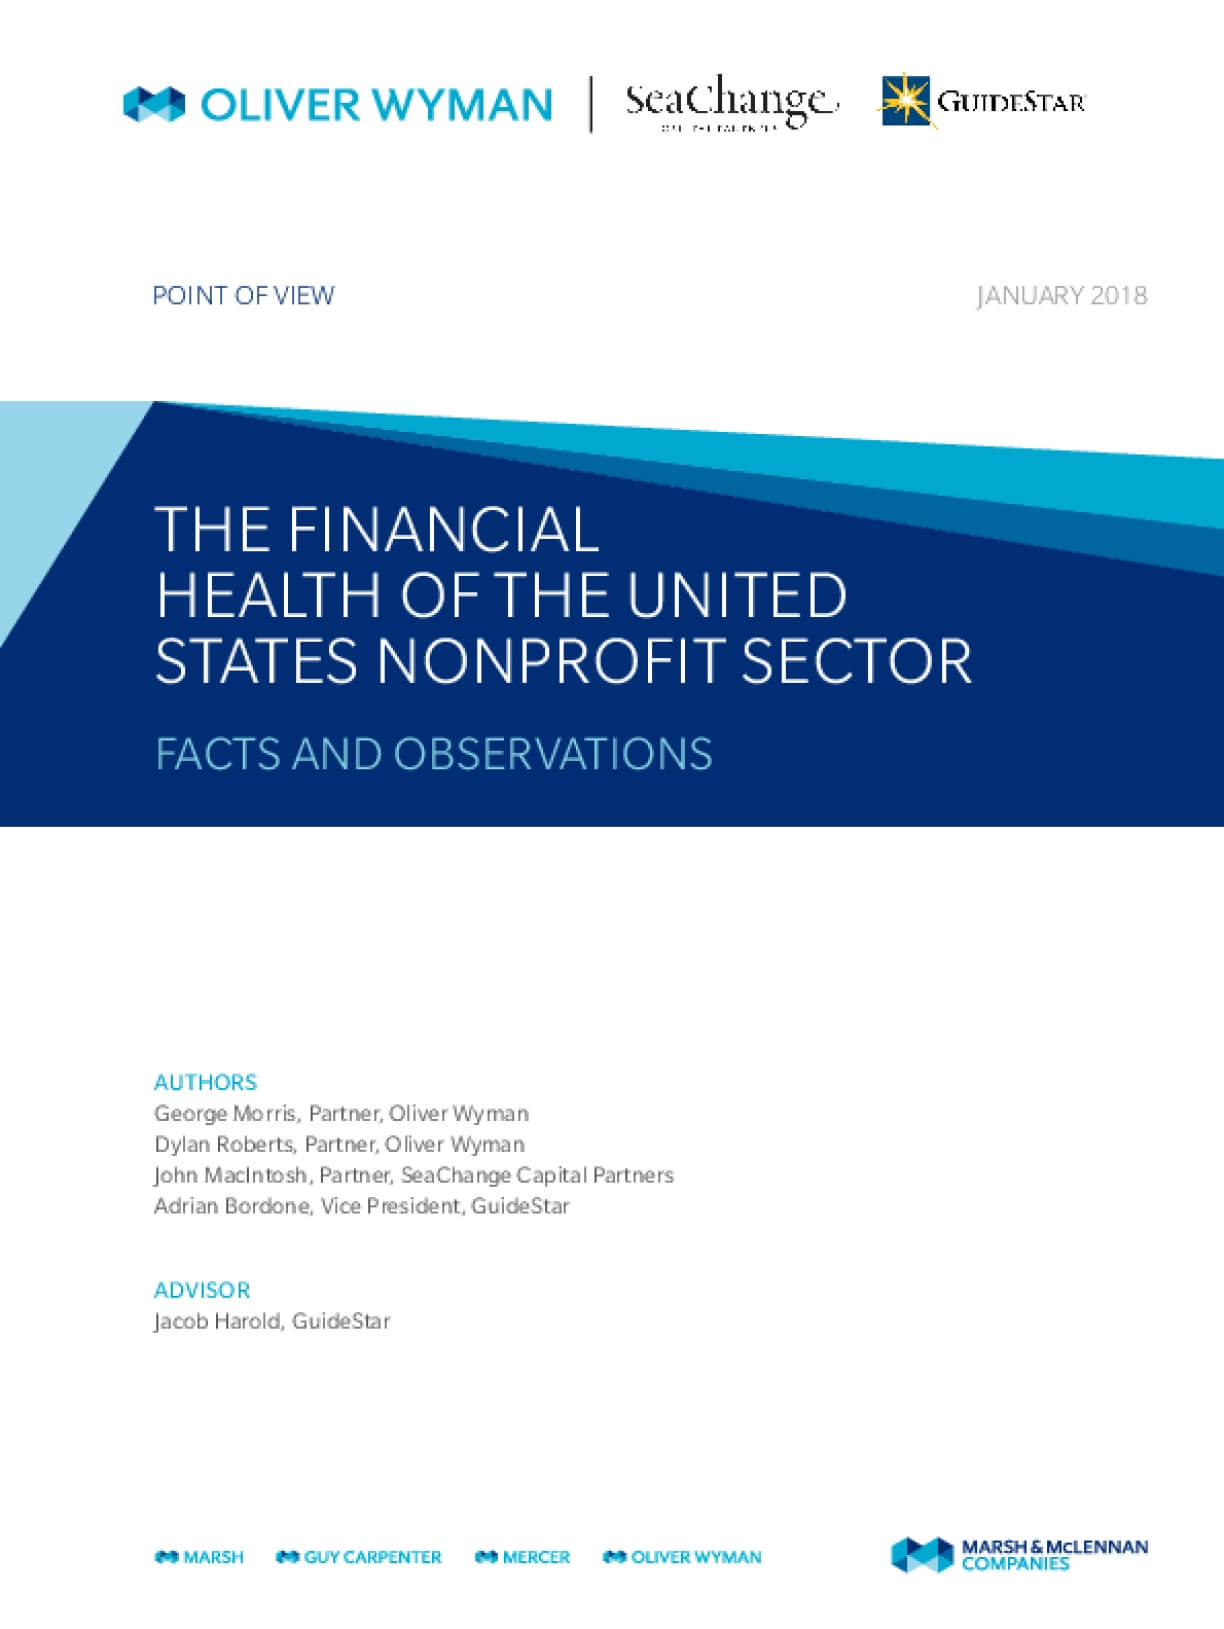 The Financial Health of the United States Nonprofit Sector: Facts and Observations